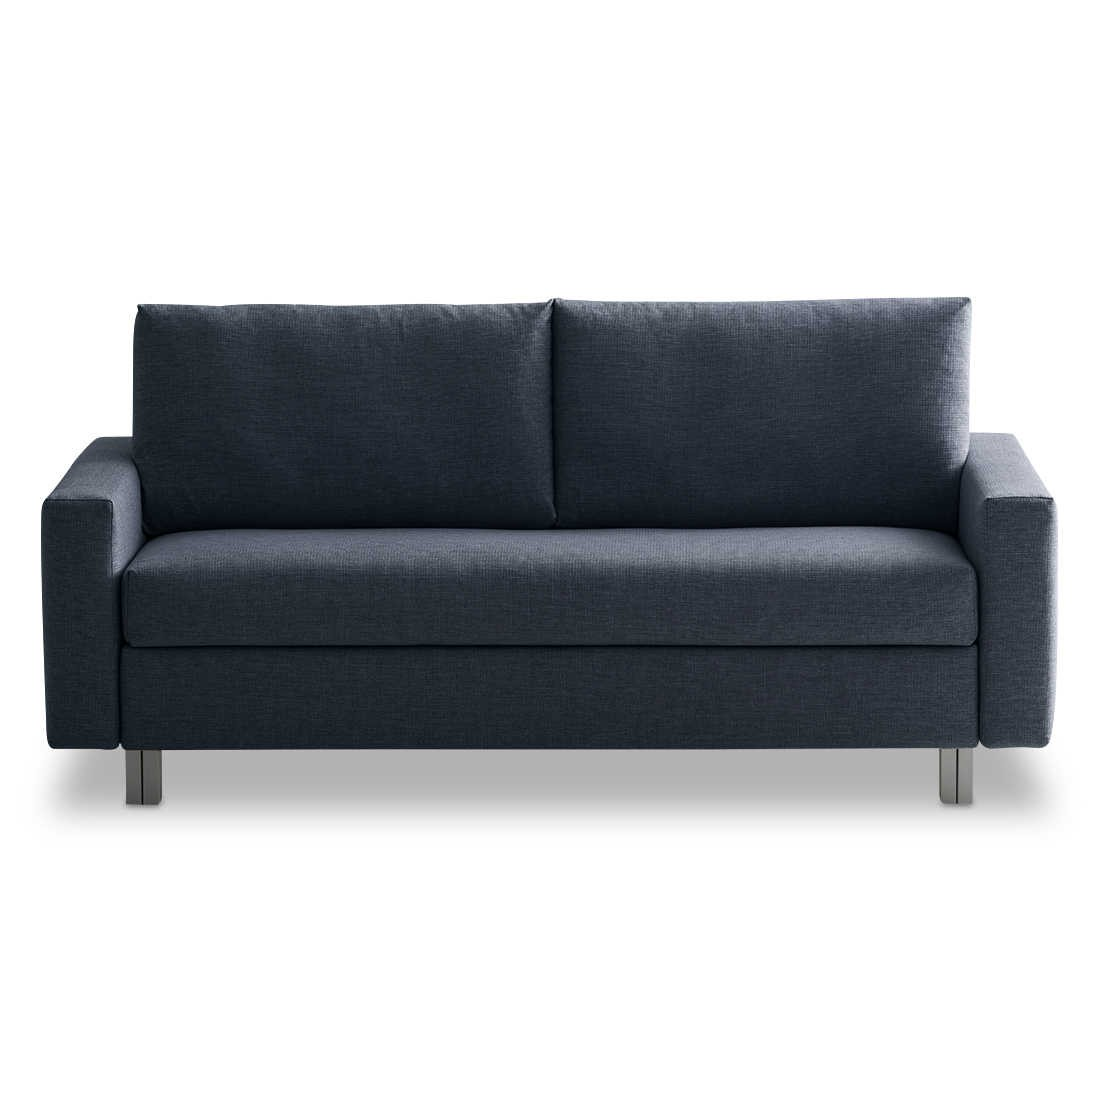 franz fertig schlafsofa maxita blau stoff online kaufen. Black Bedroom Furniture Sets. Home Design Ideas